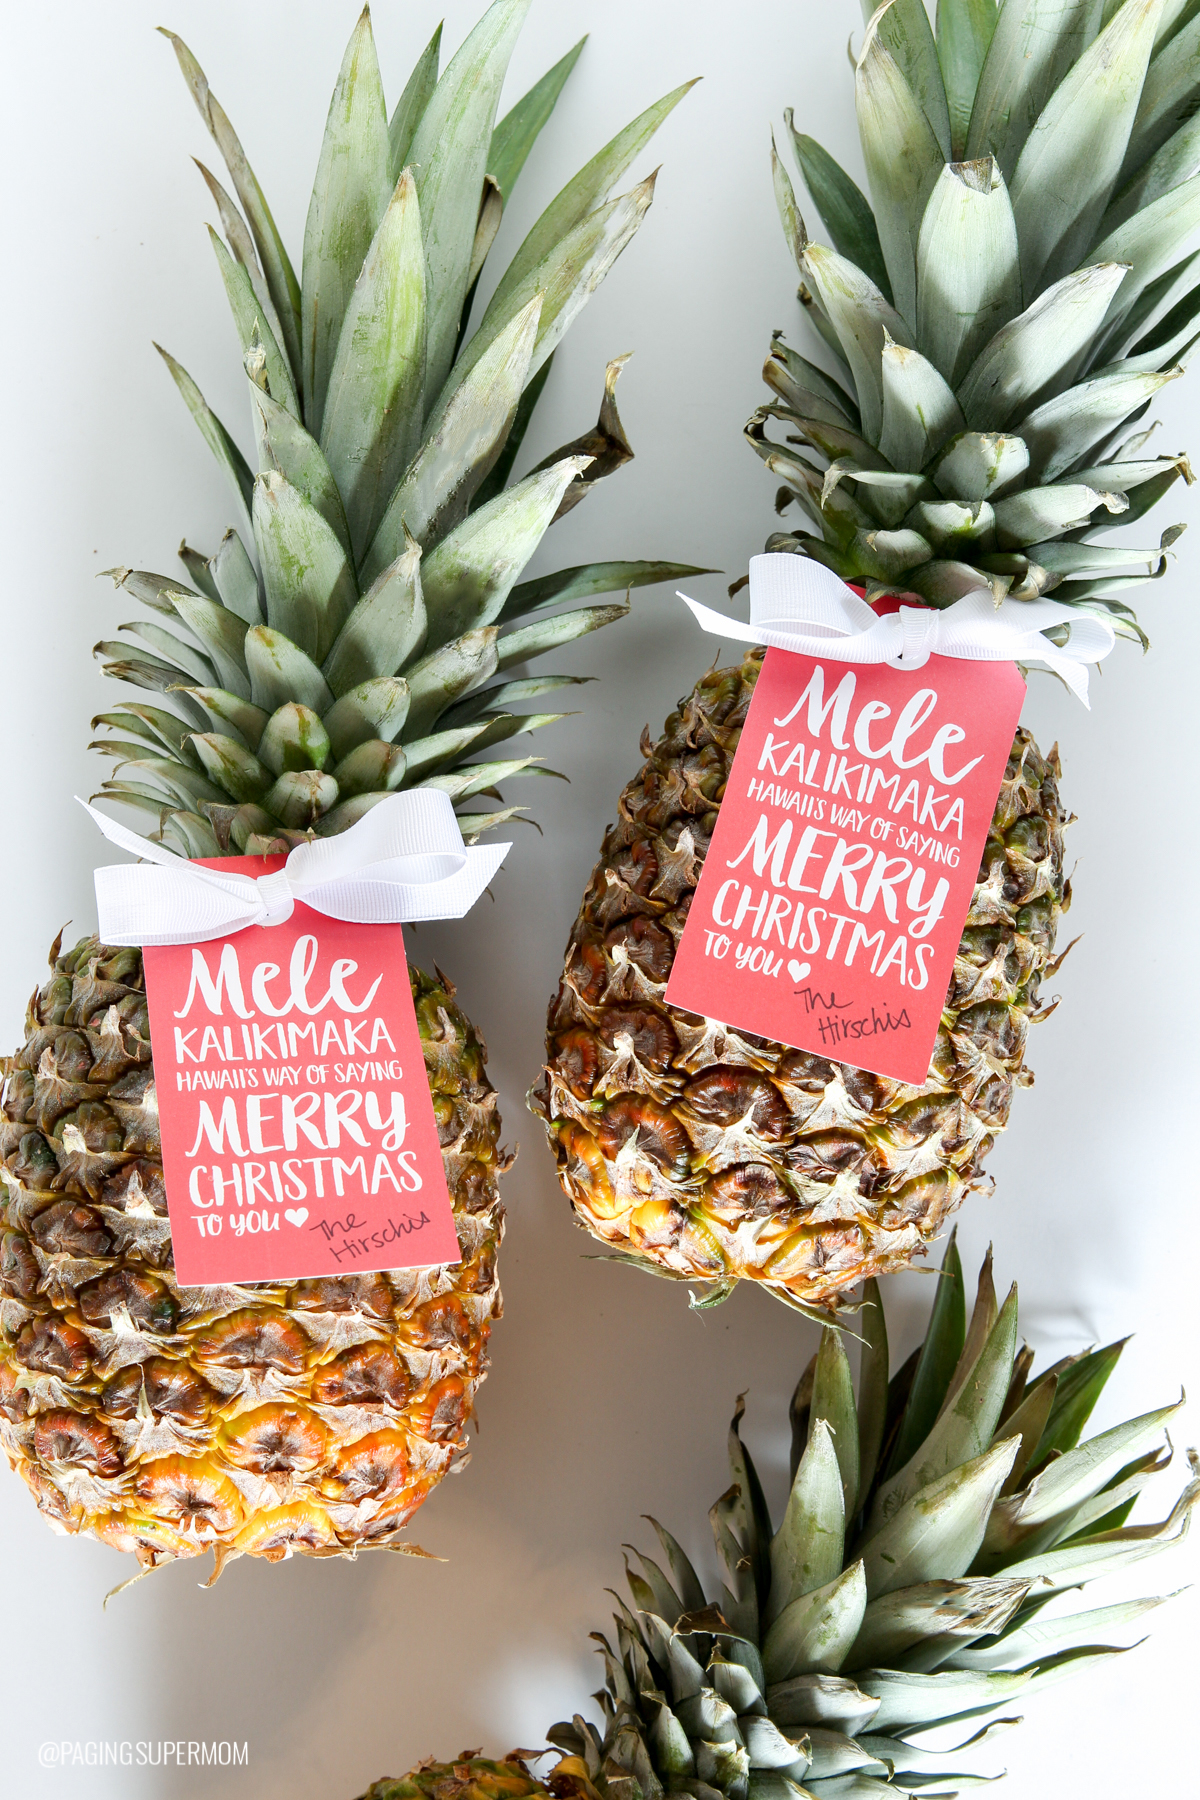 Give Christmas Pineapples with FREE Mele Kalikimaka Gift Tag via @PagingSupermom